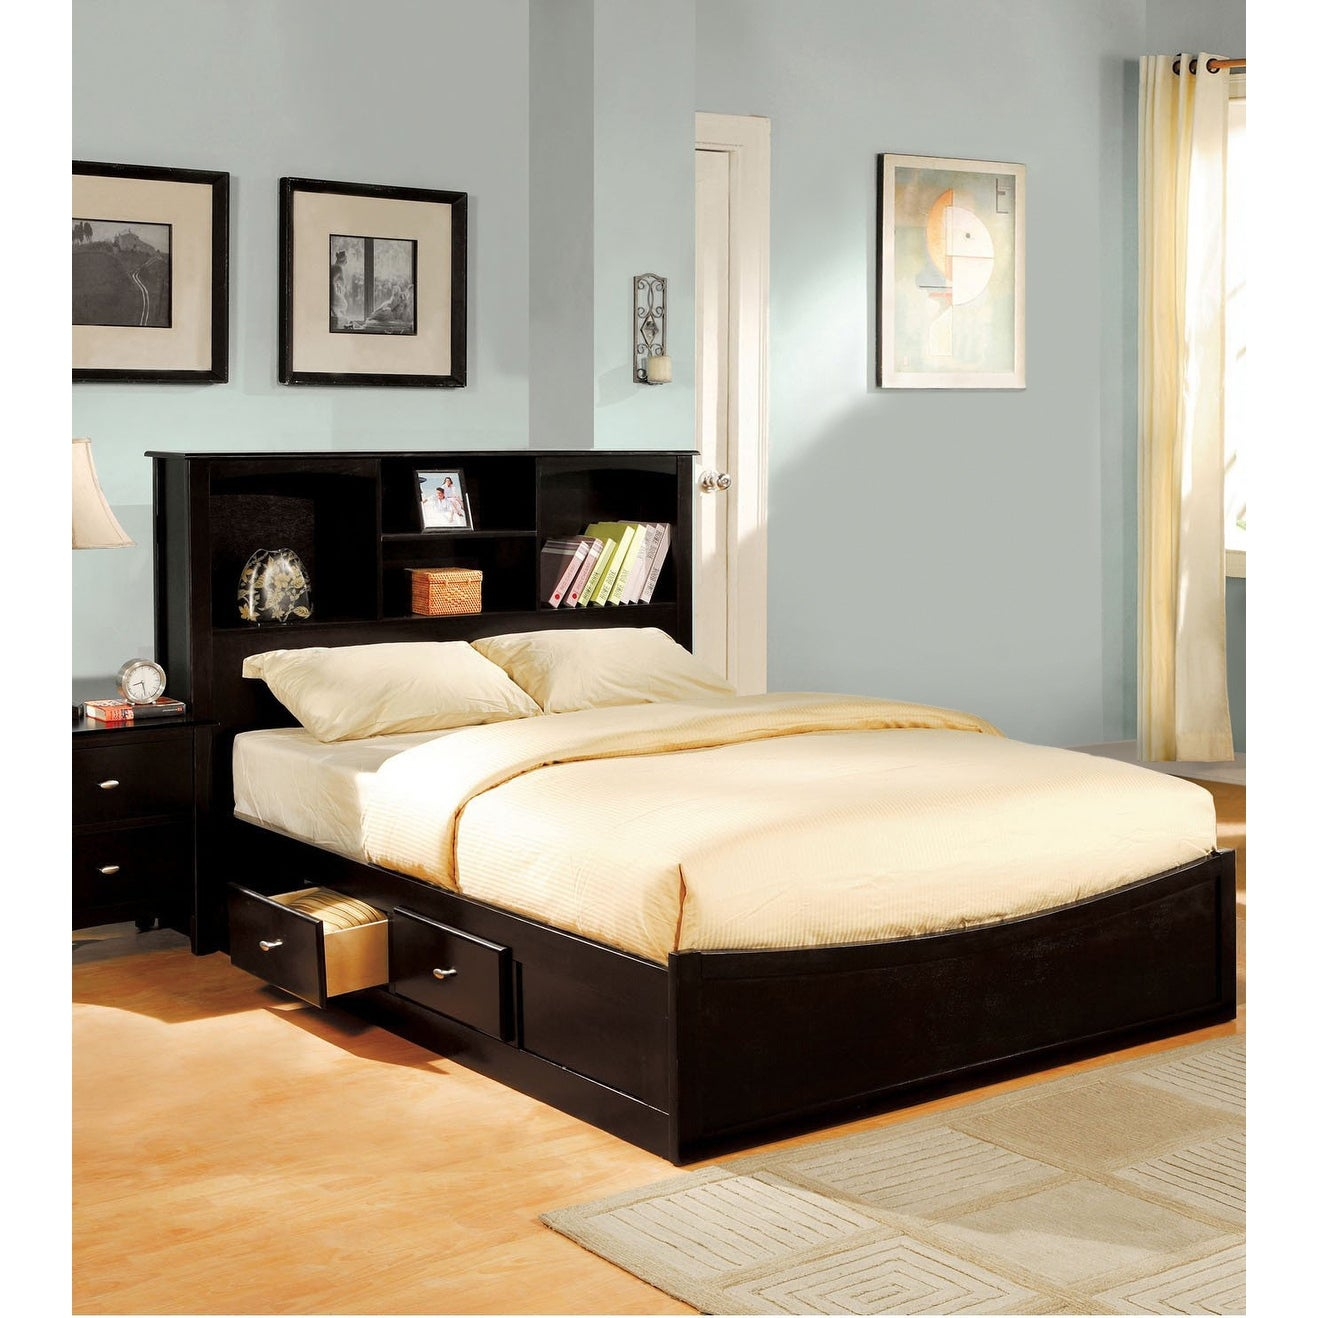 Furniture Of America Yetz Contemporary Brown Solid Wood Platform Bed On Sale Overstock 9237362 King